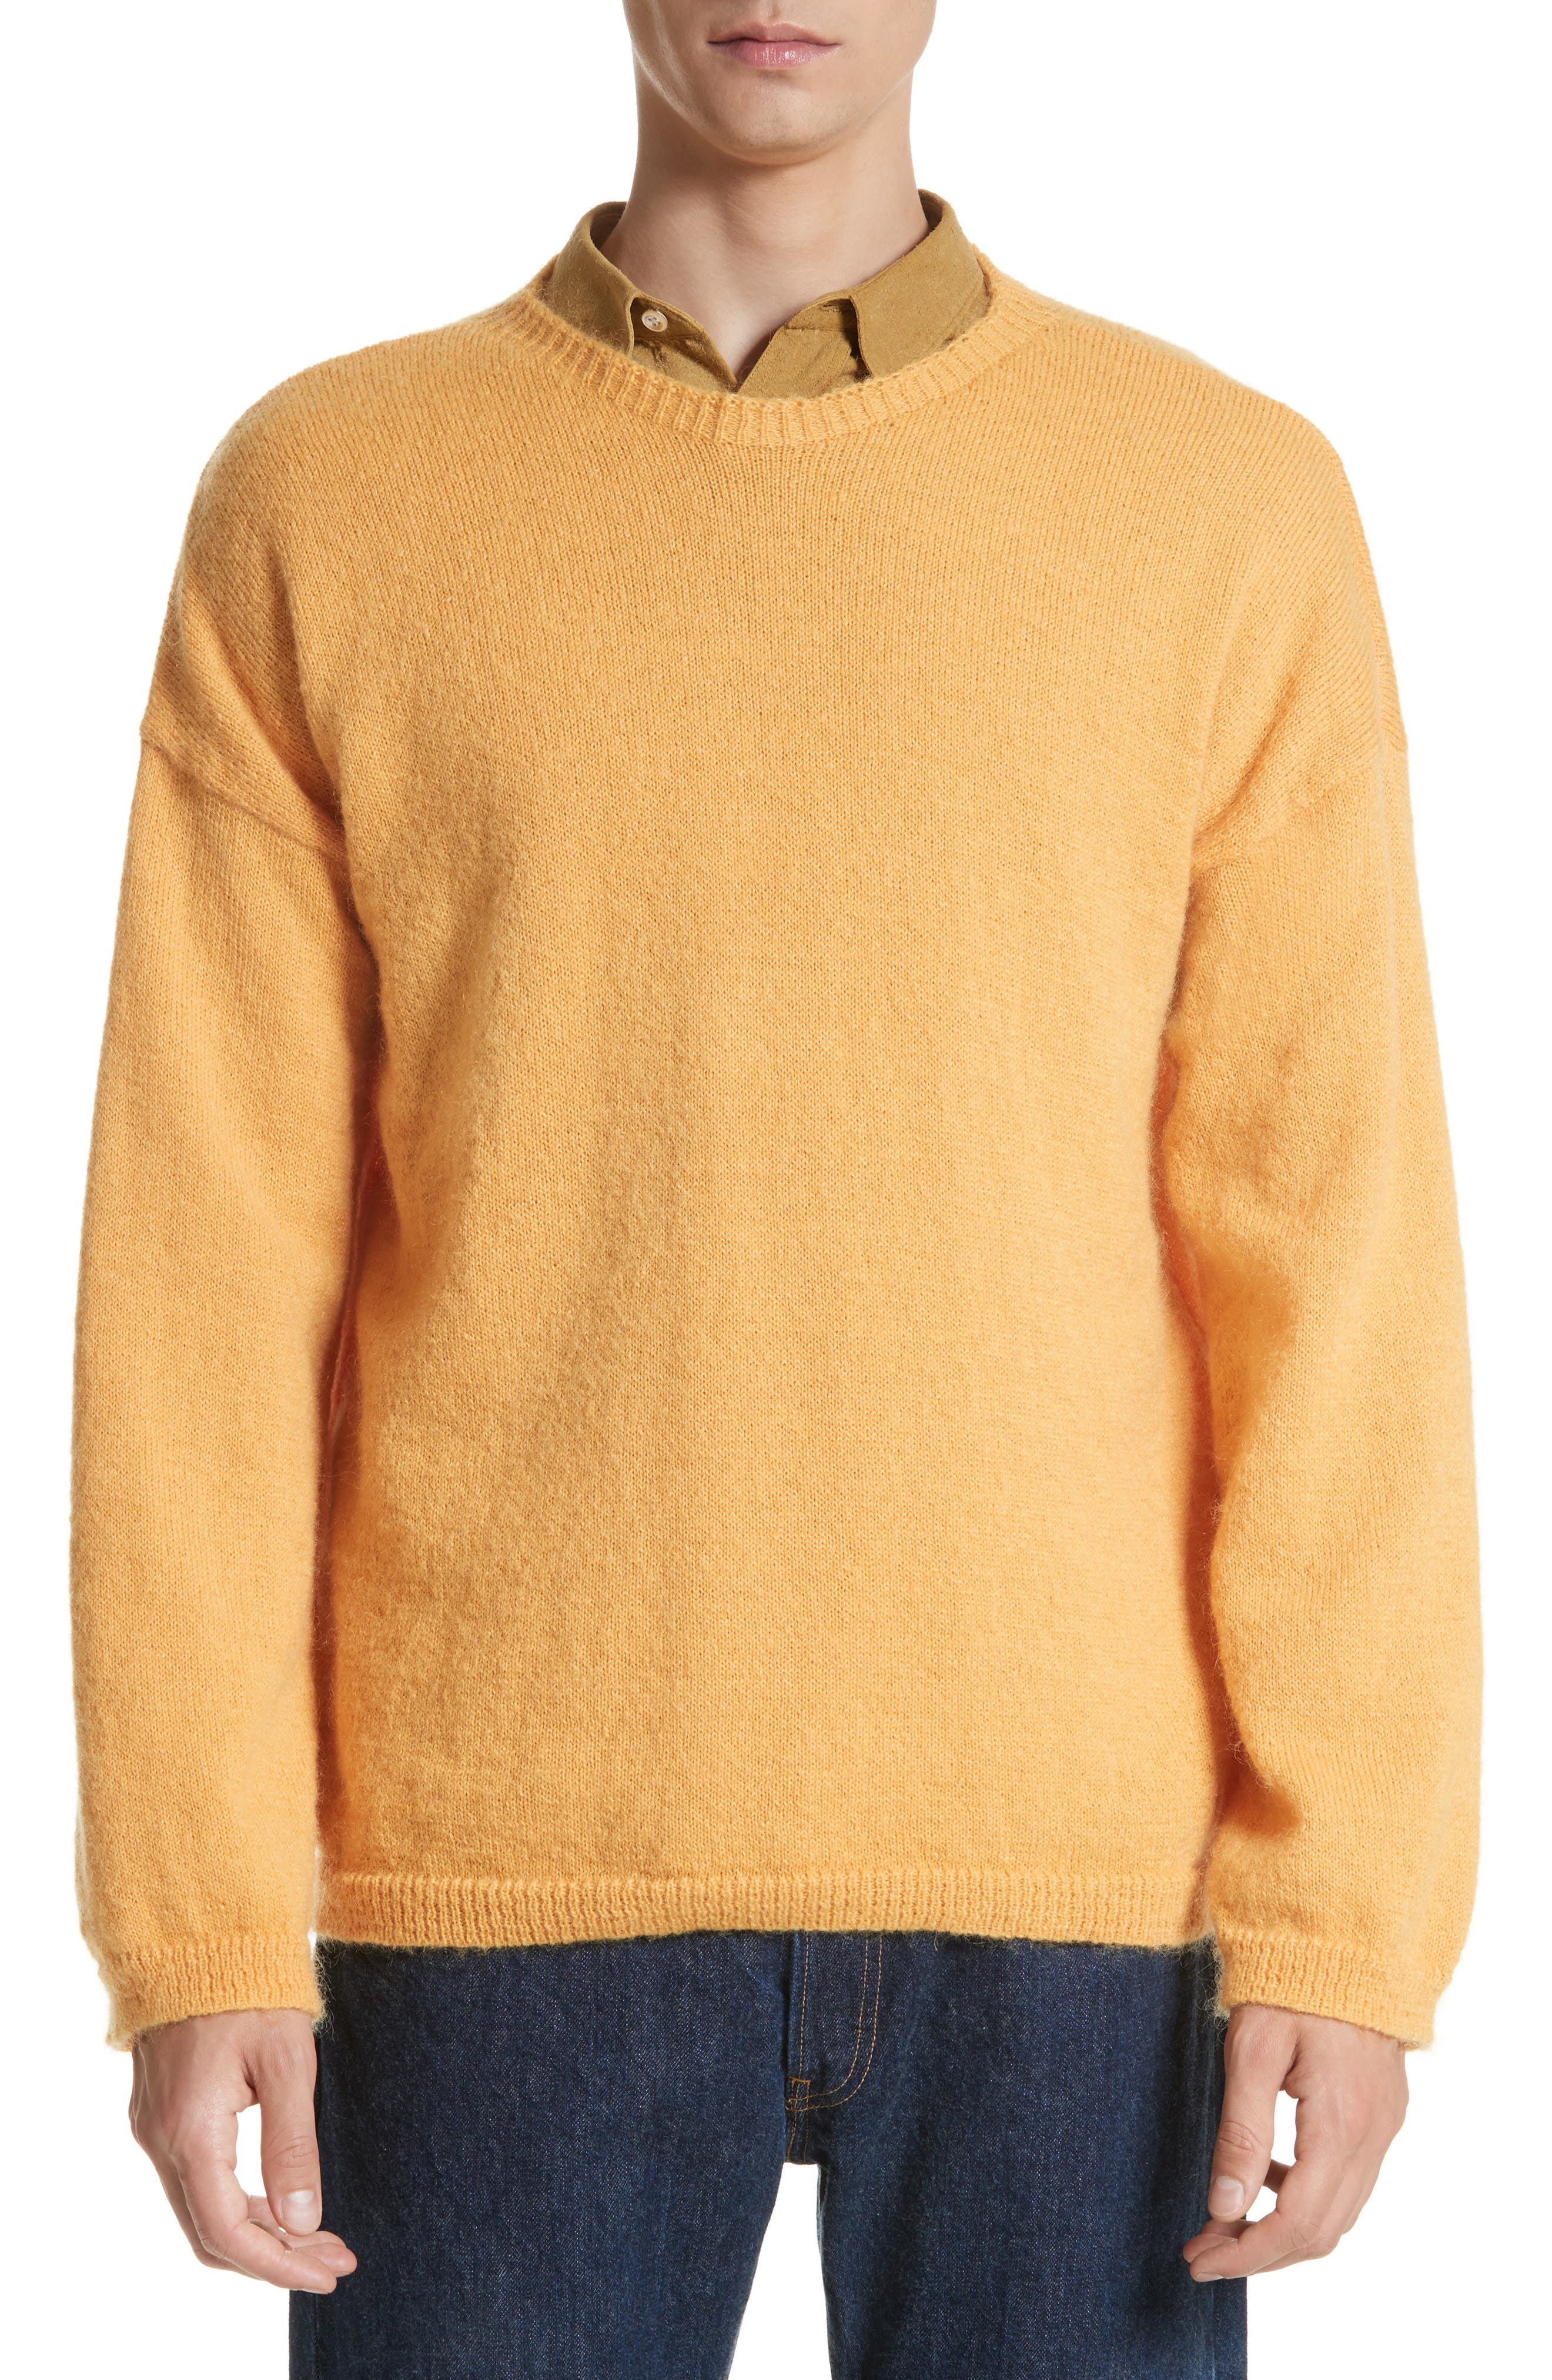 Alternate Image 1 Selected - Our Legacy Mohair Blend Crewneck Sweater